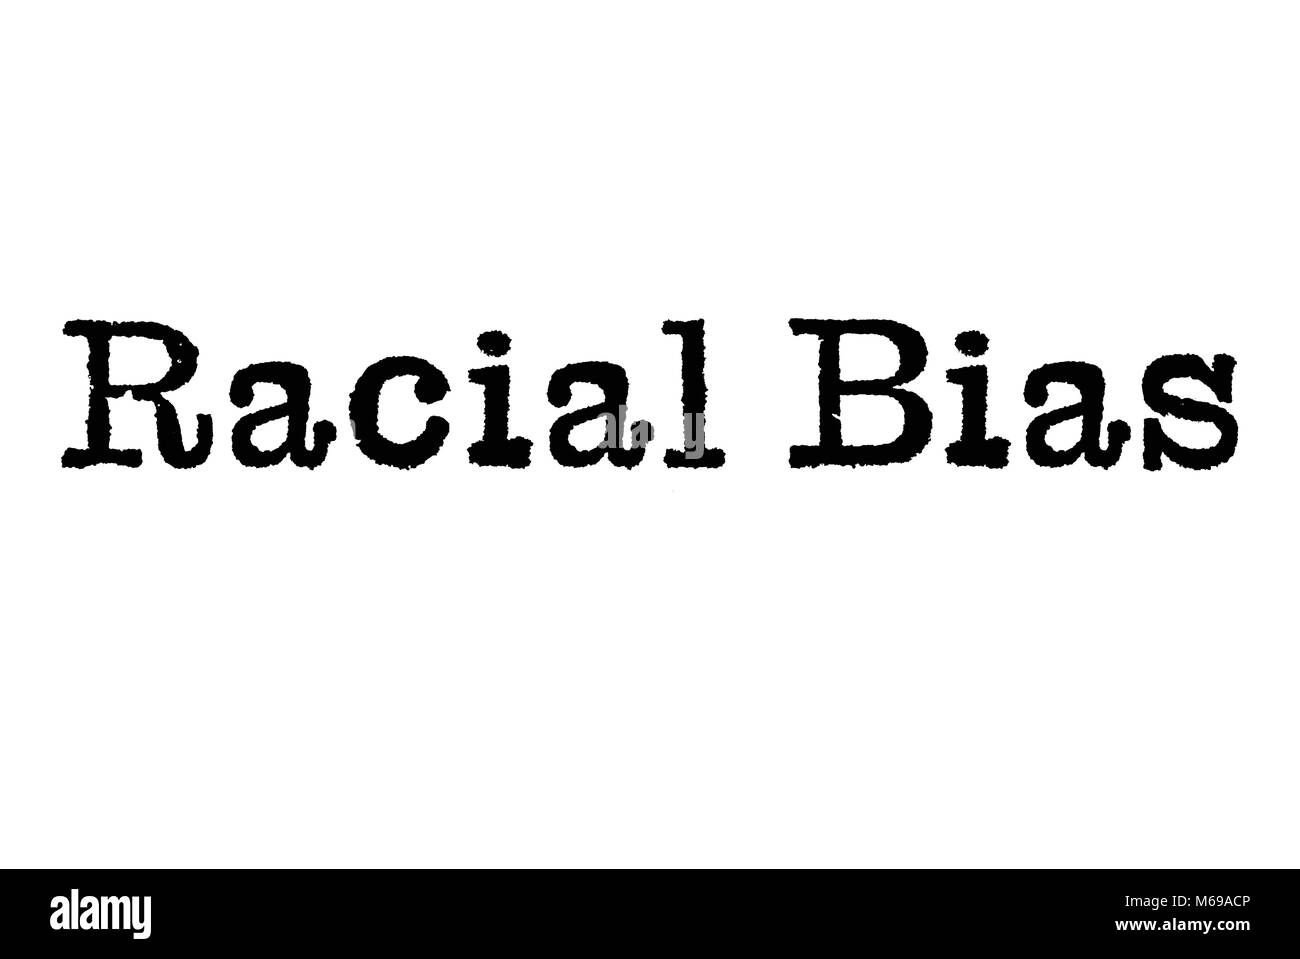 The word Racial Bias from a typewriter on a white background - Stock Image